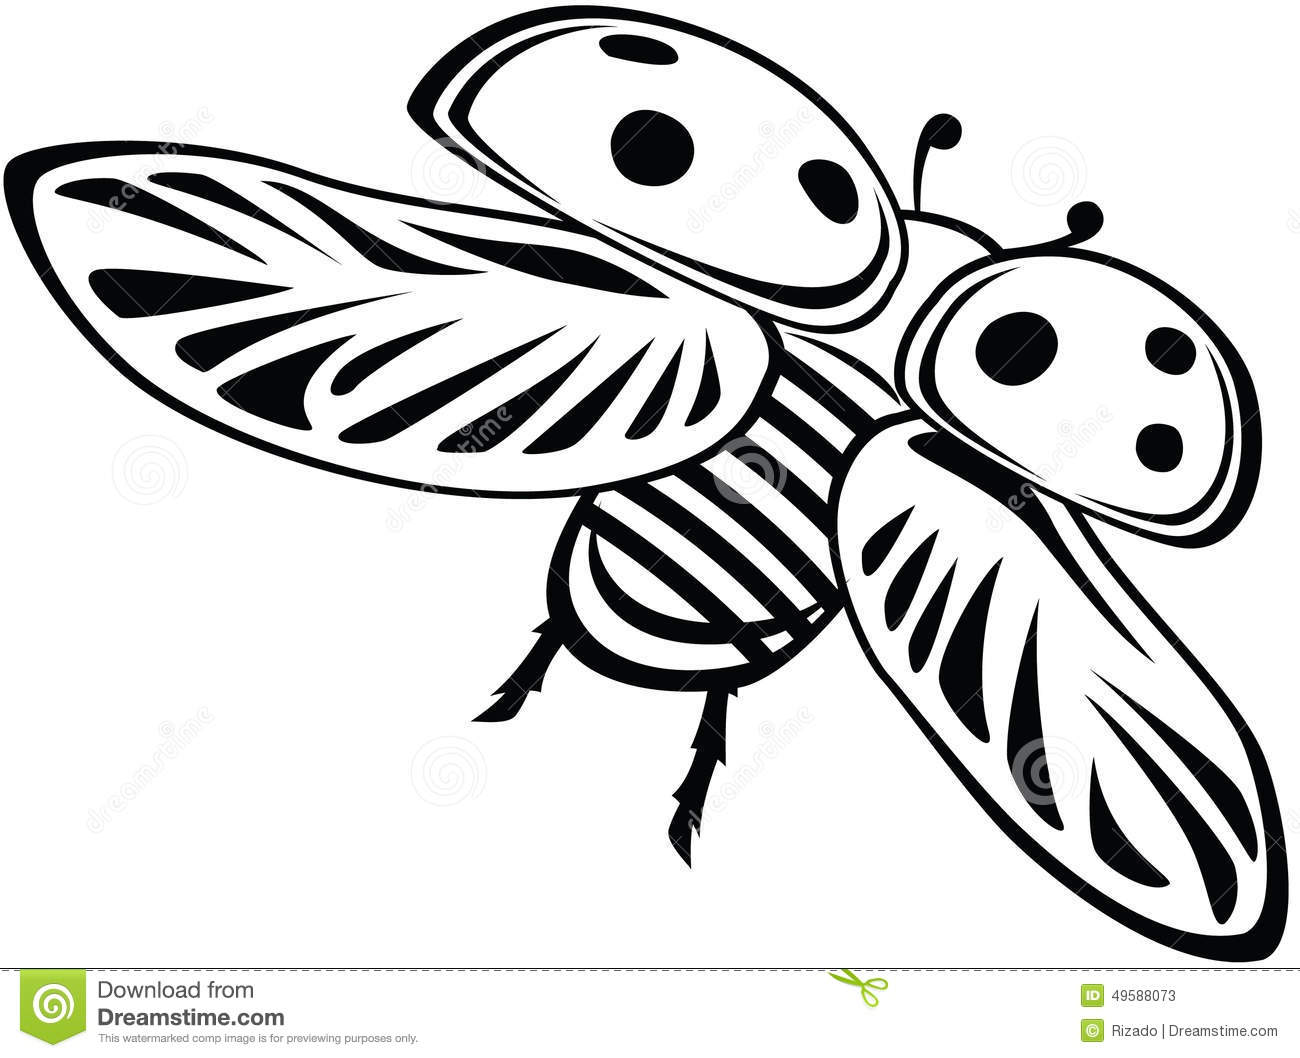 Clipart of a Black and White Ladybug  Royalty Free Vector